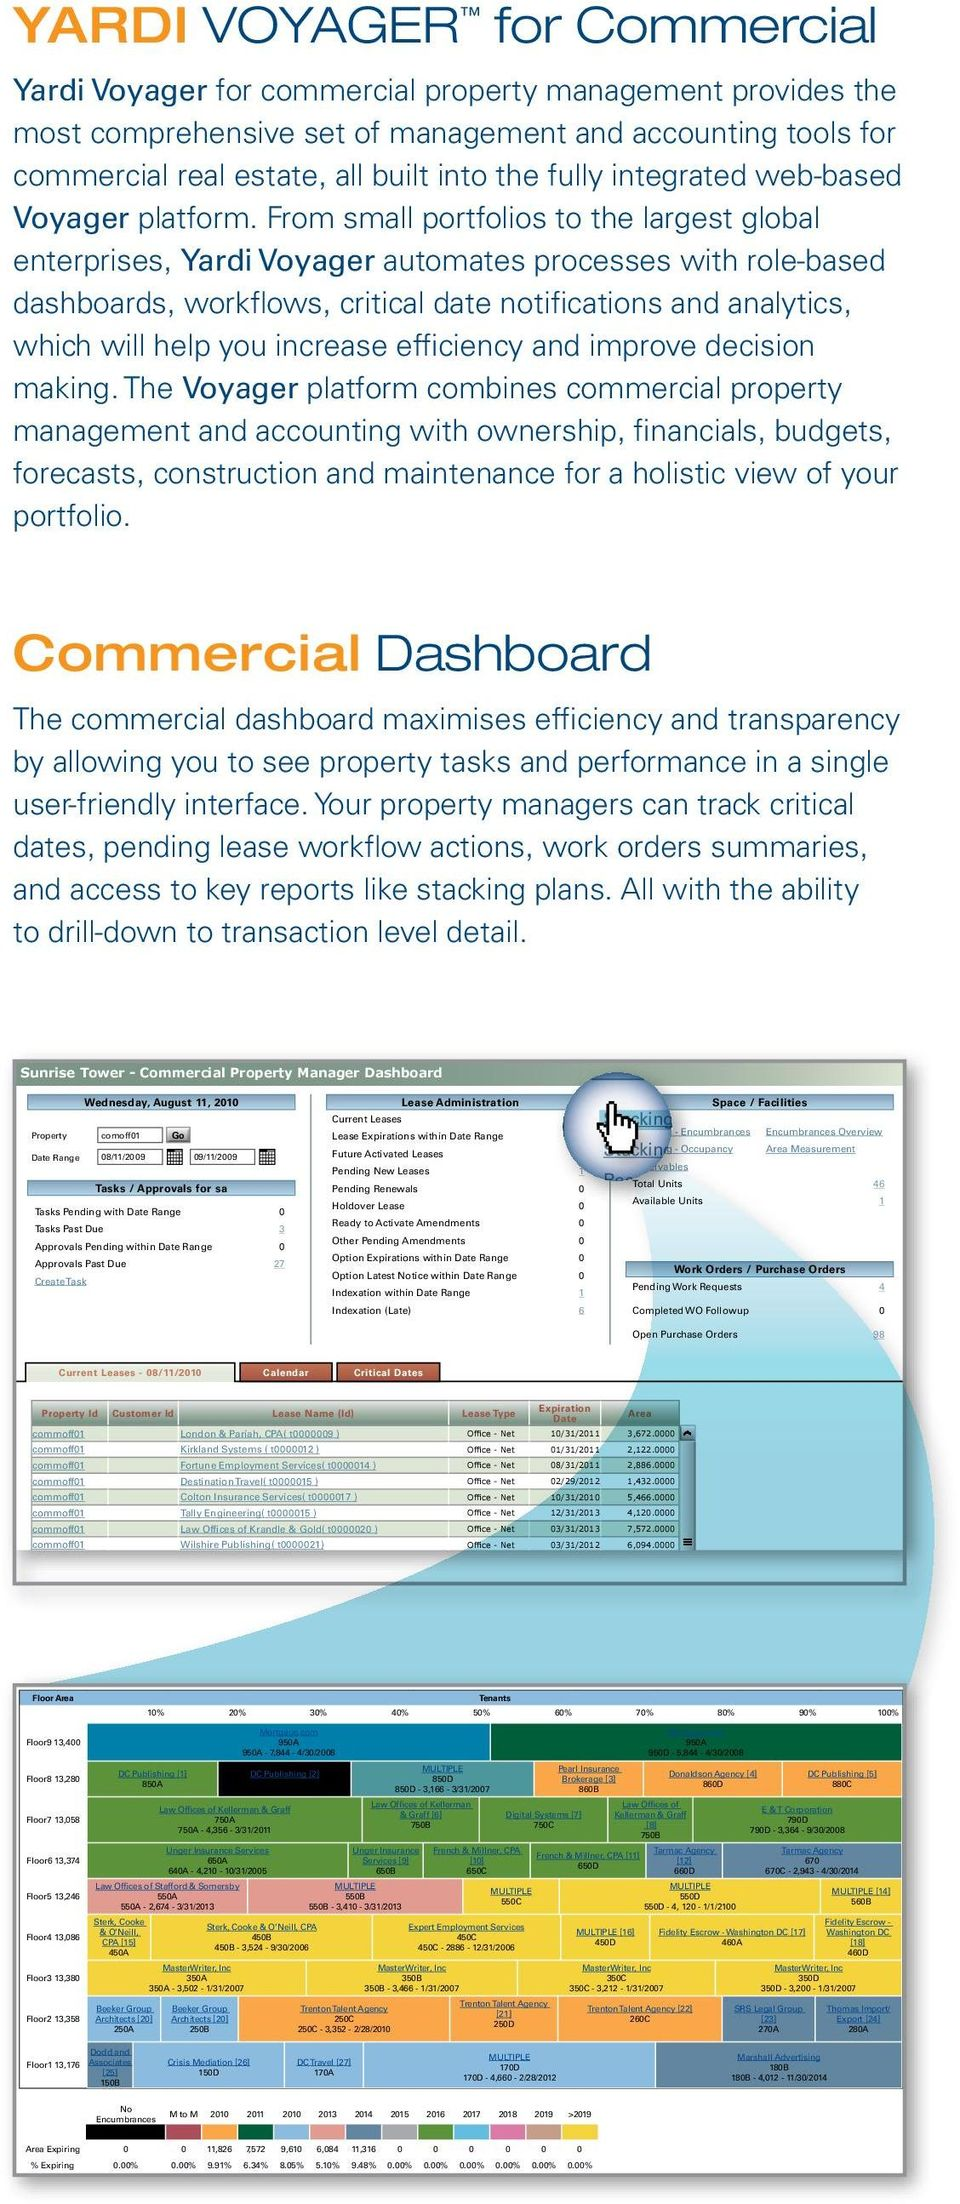 YARDI VOYAGER Commercial Property Management Software - PDF